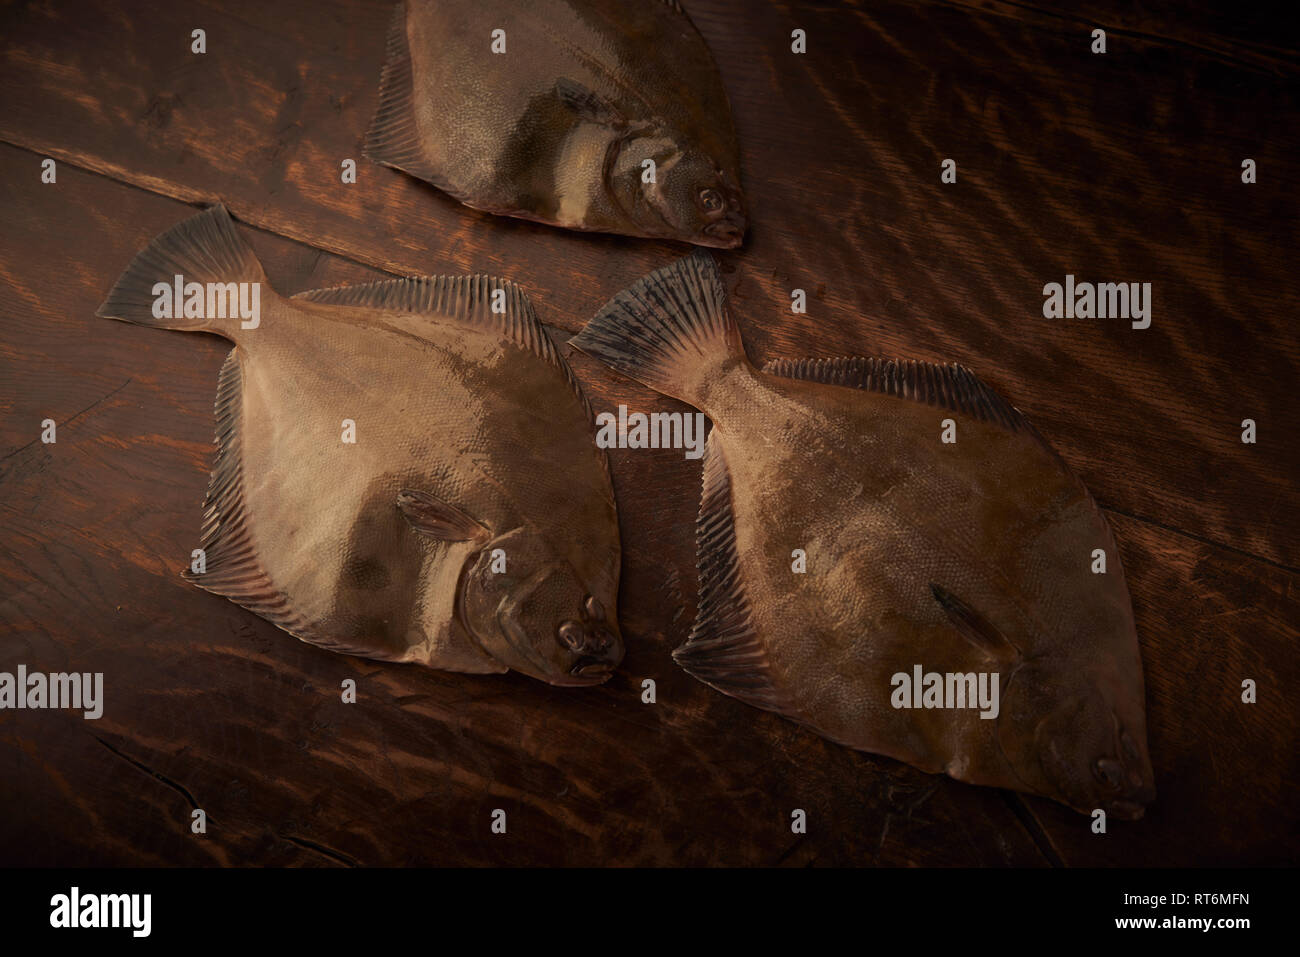 Three fresh flatfish look as though they are swimming in a school through a timber sea. The ready to be prepared for dinner. - Stock Image